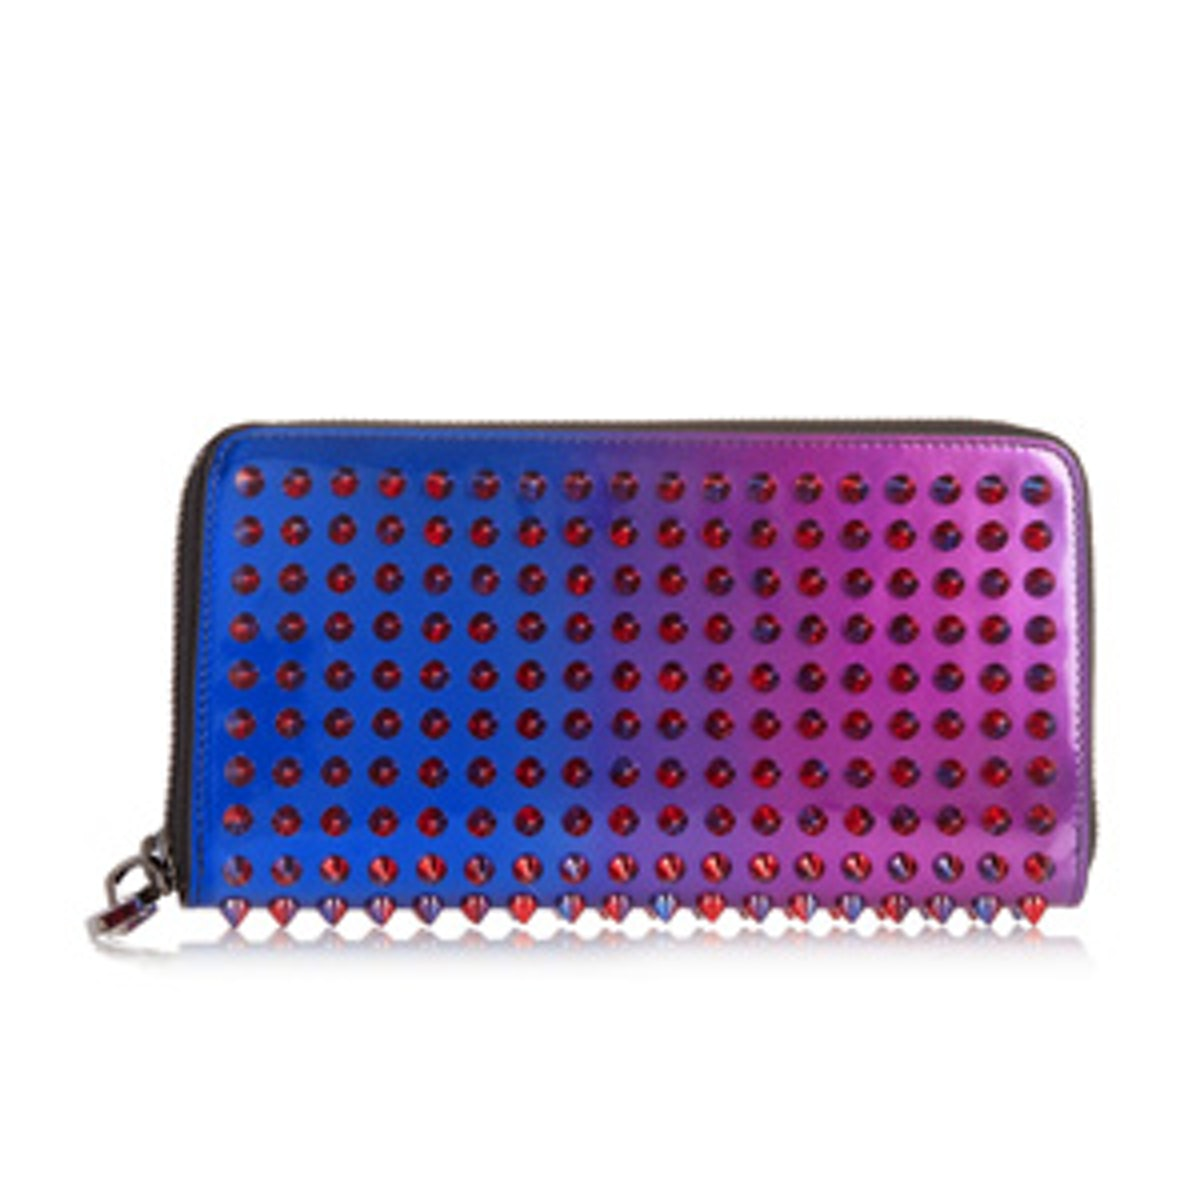 Spiked Patent-Leather Wallet